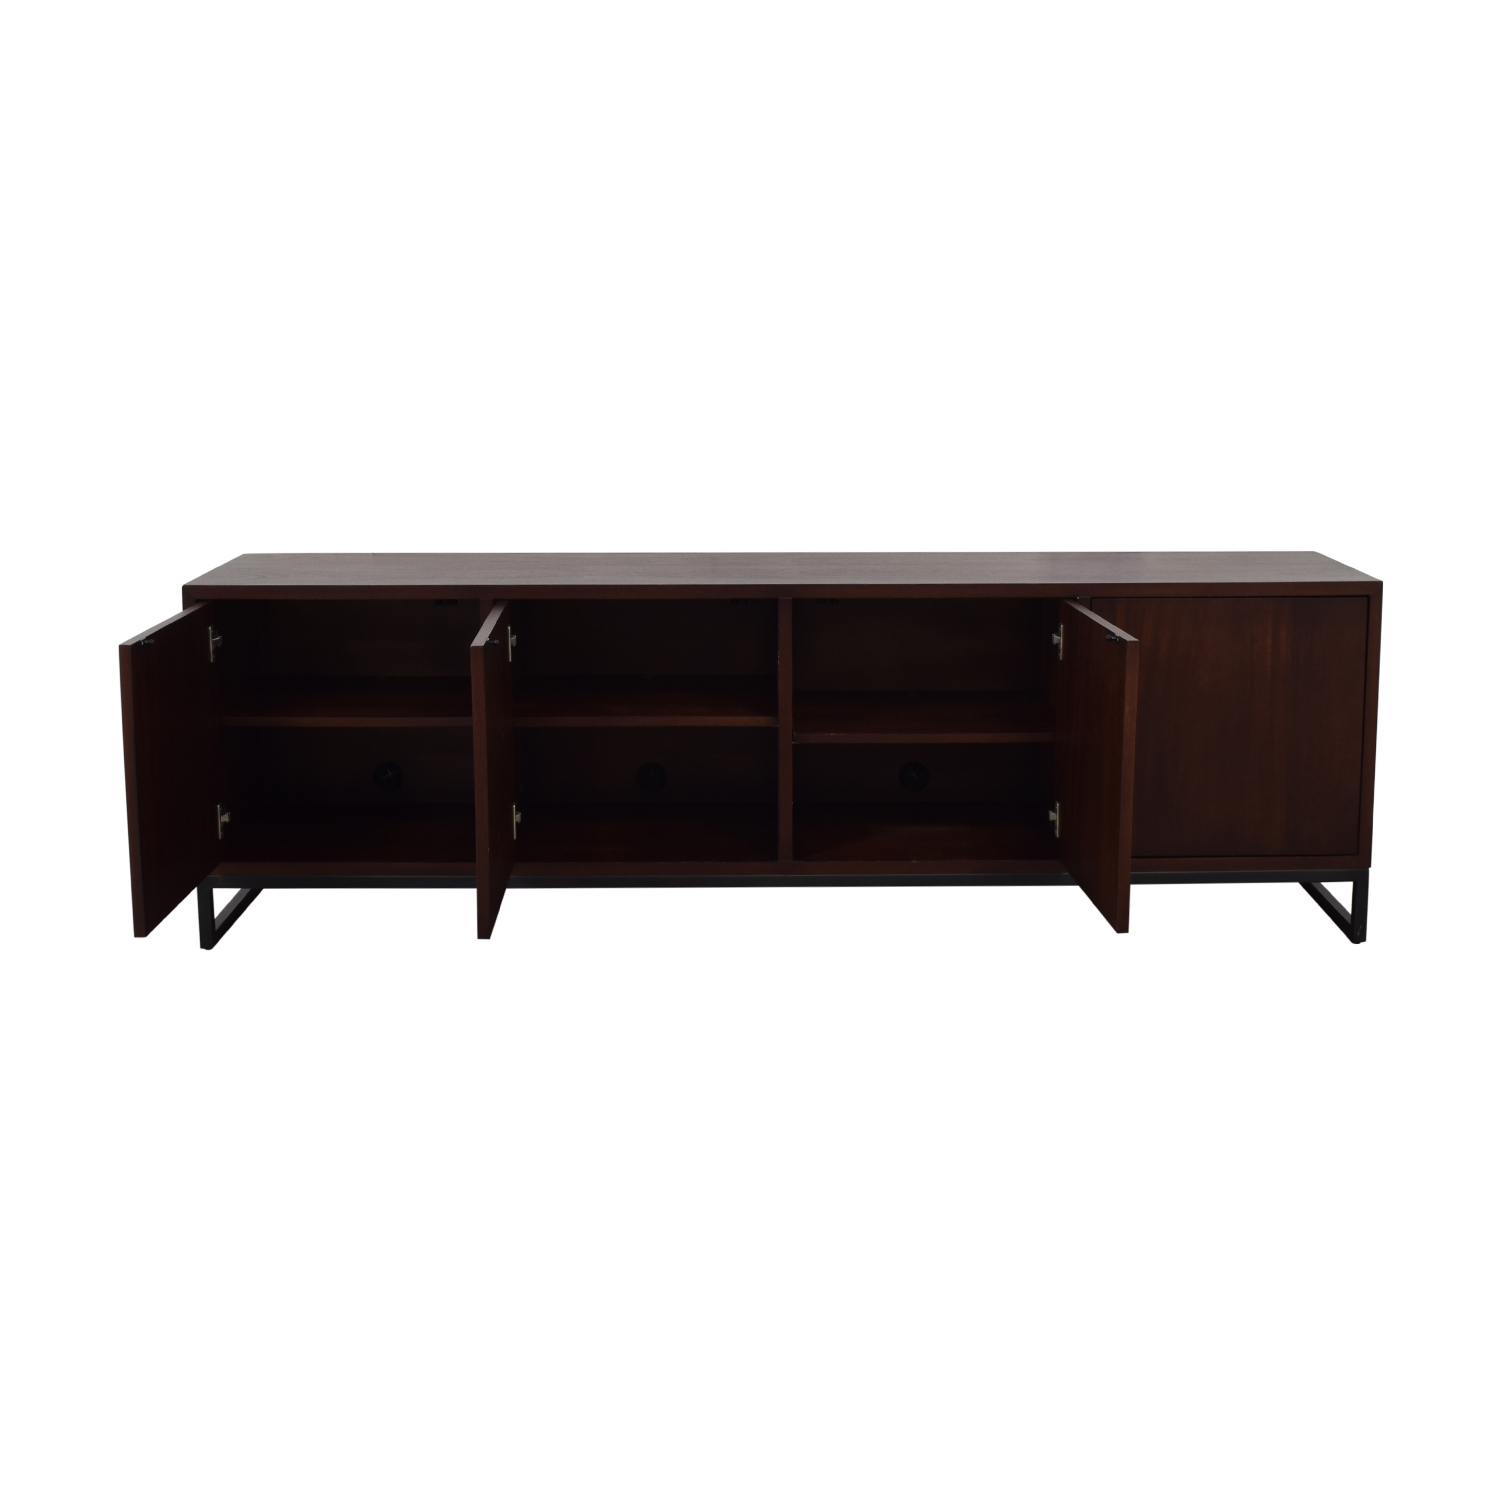 Desiron Desiron Wood Two Drawer and Shelves Credenza on sale